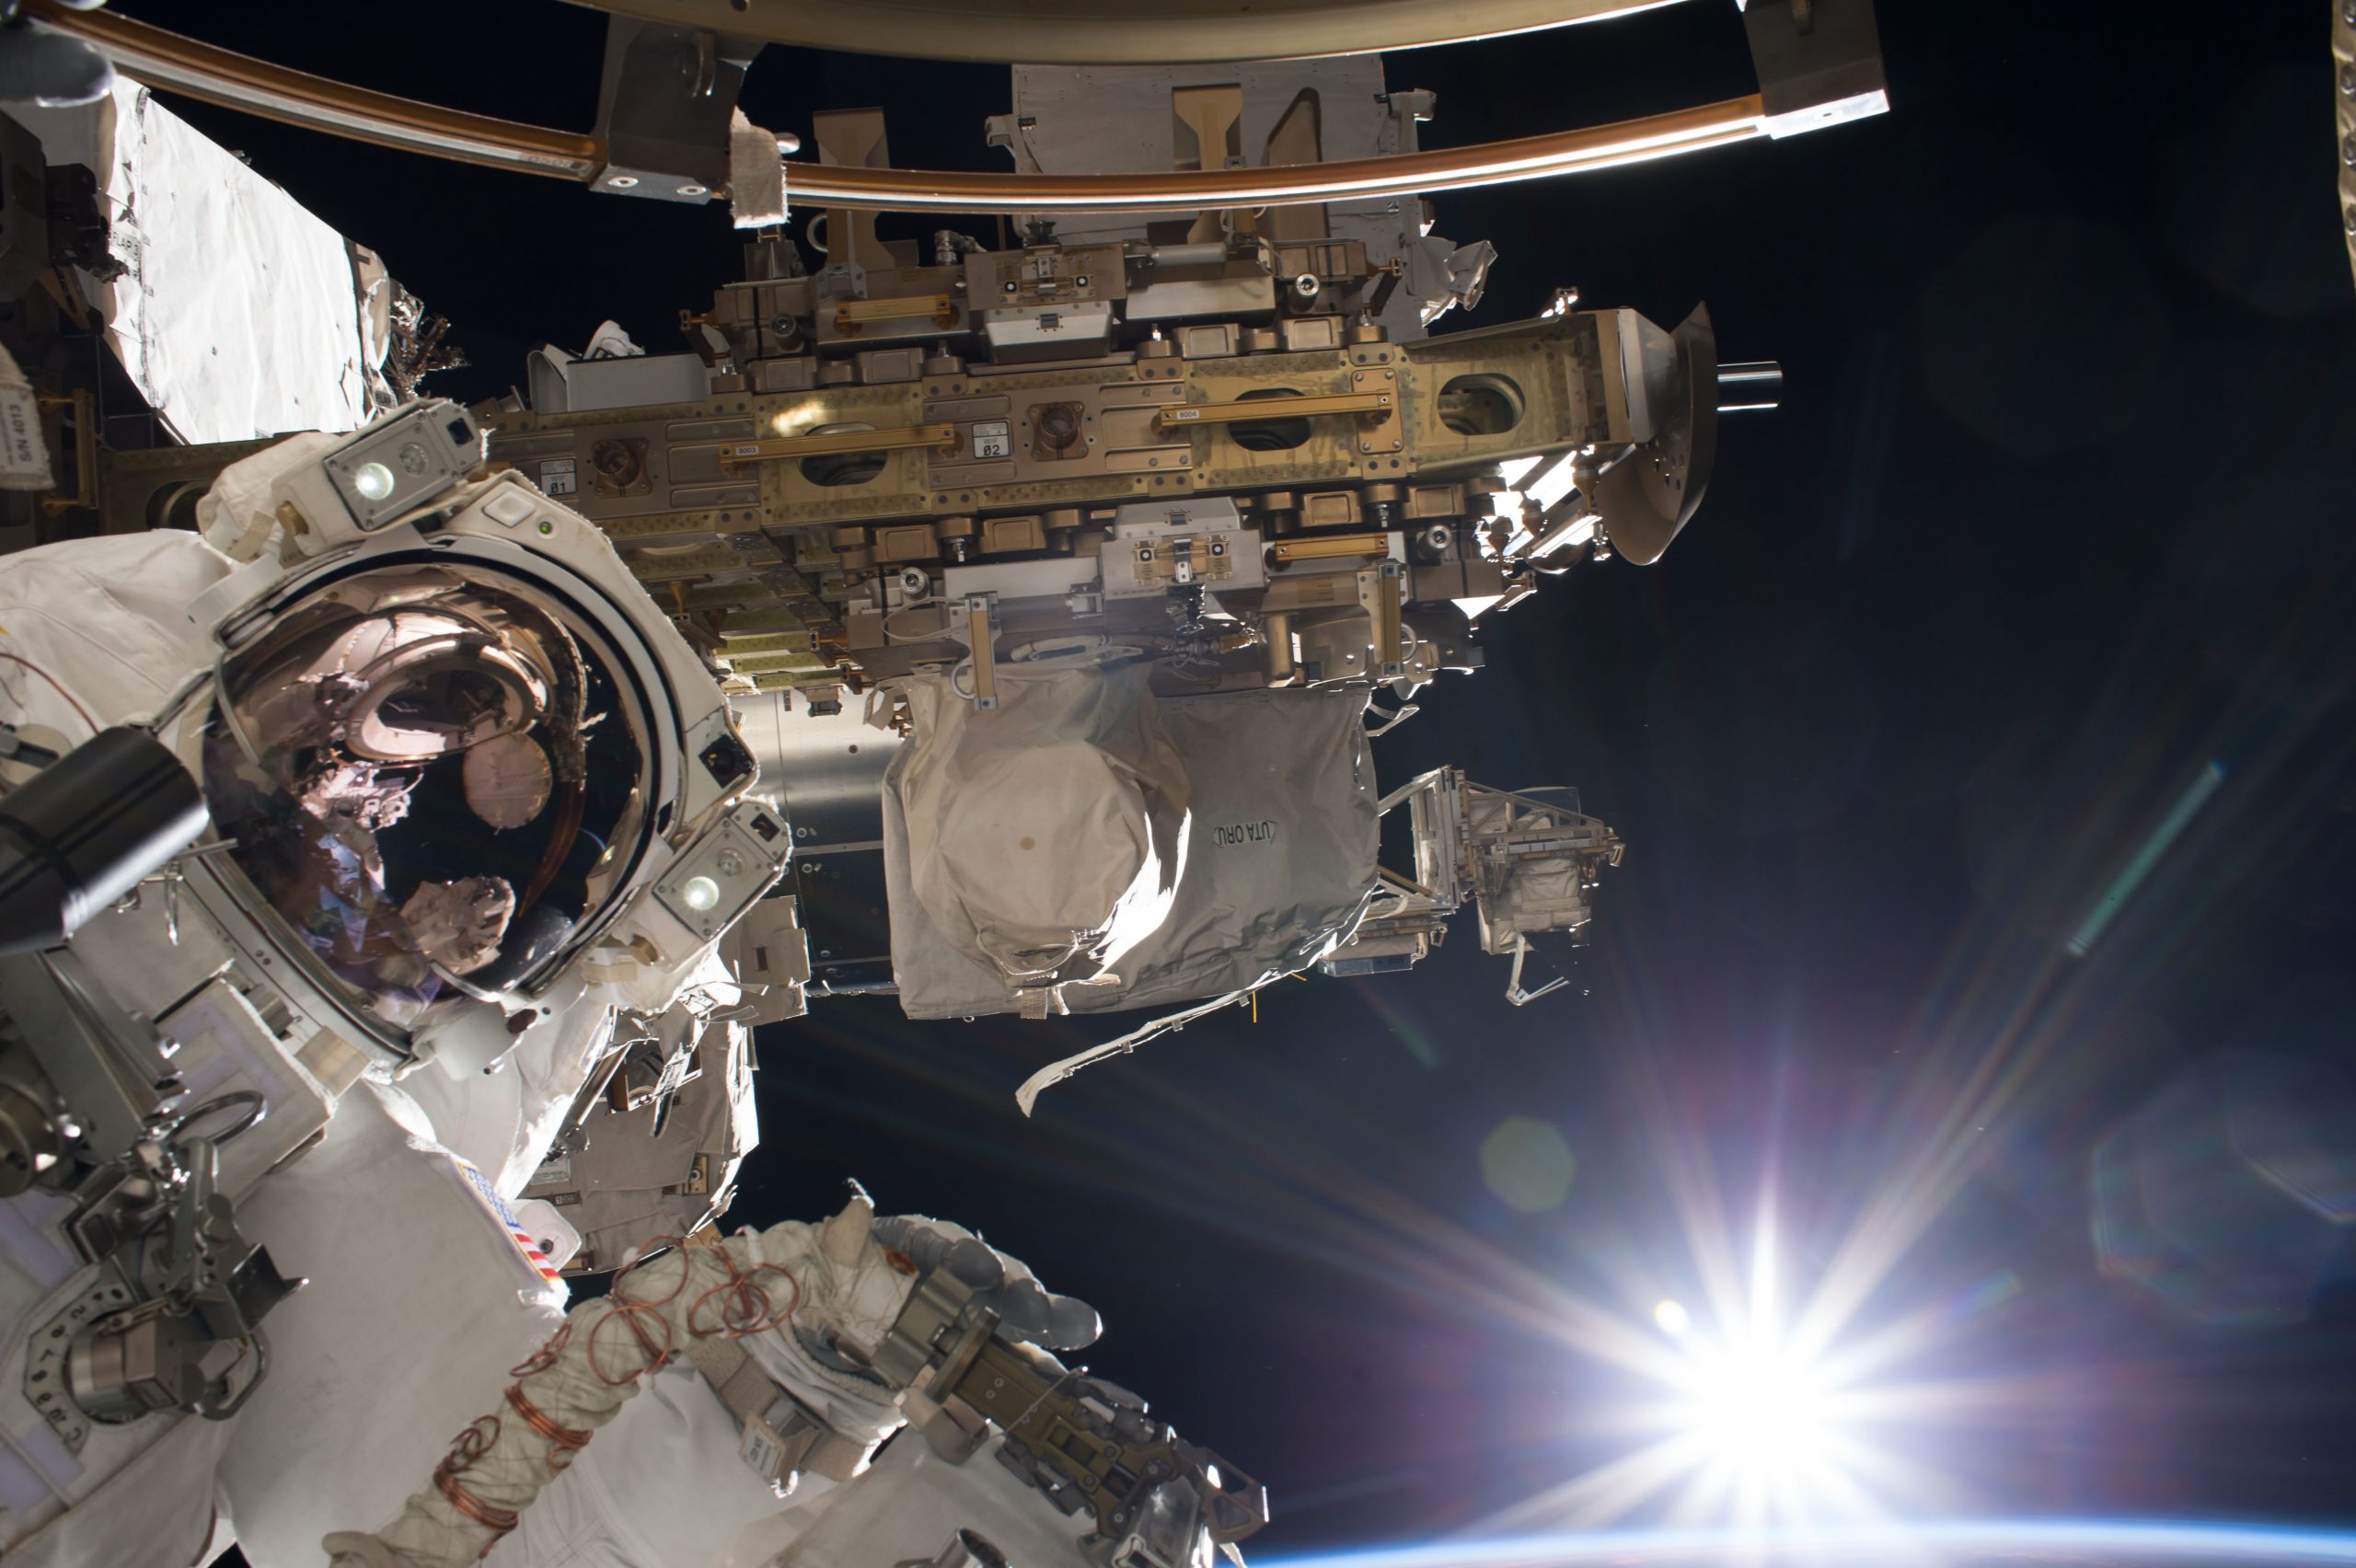 Astronaut Mark Vande Hei outside the International Space Station.